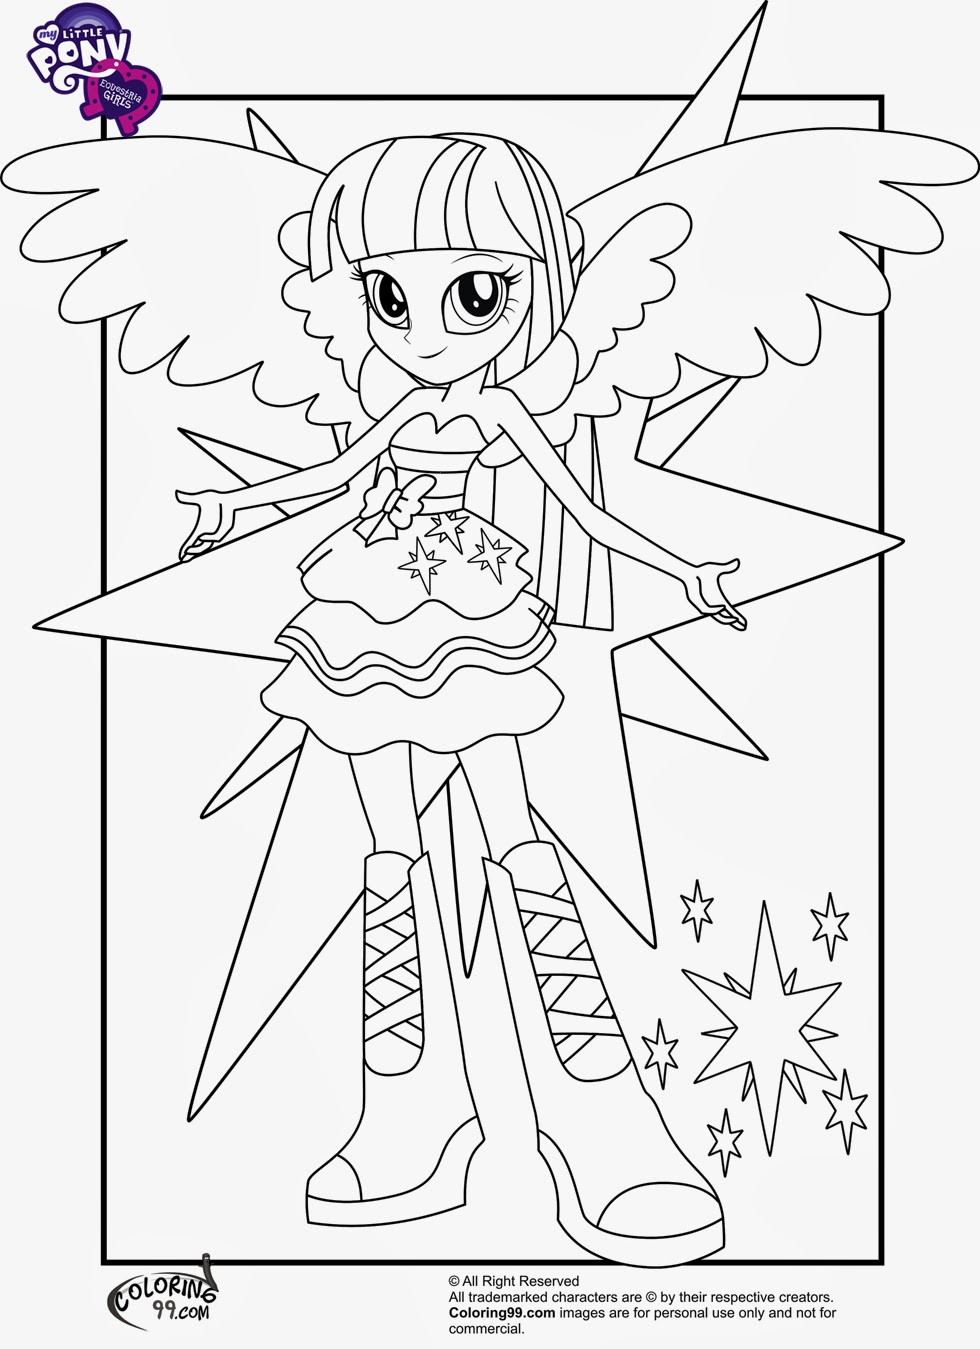 Free Coloring Pages Of Mlp Equestria Girls Free Equestria Coloring Pages